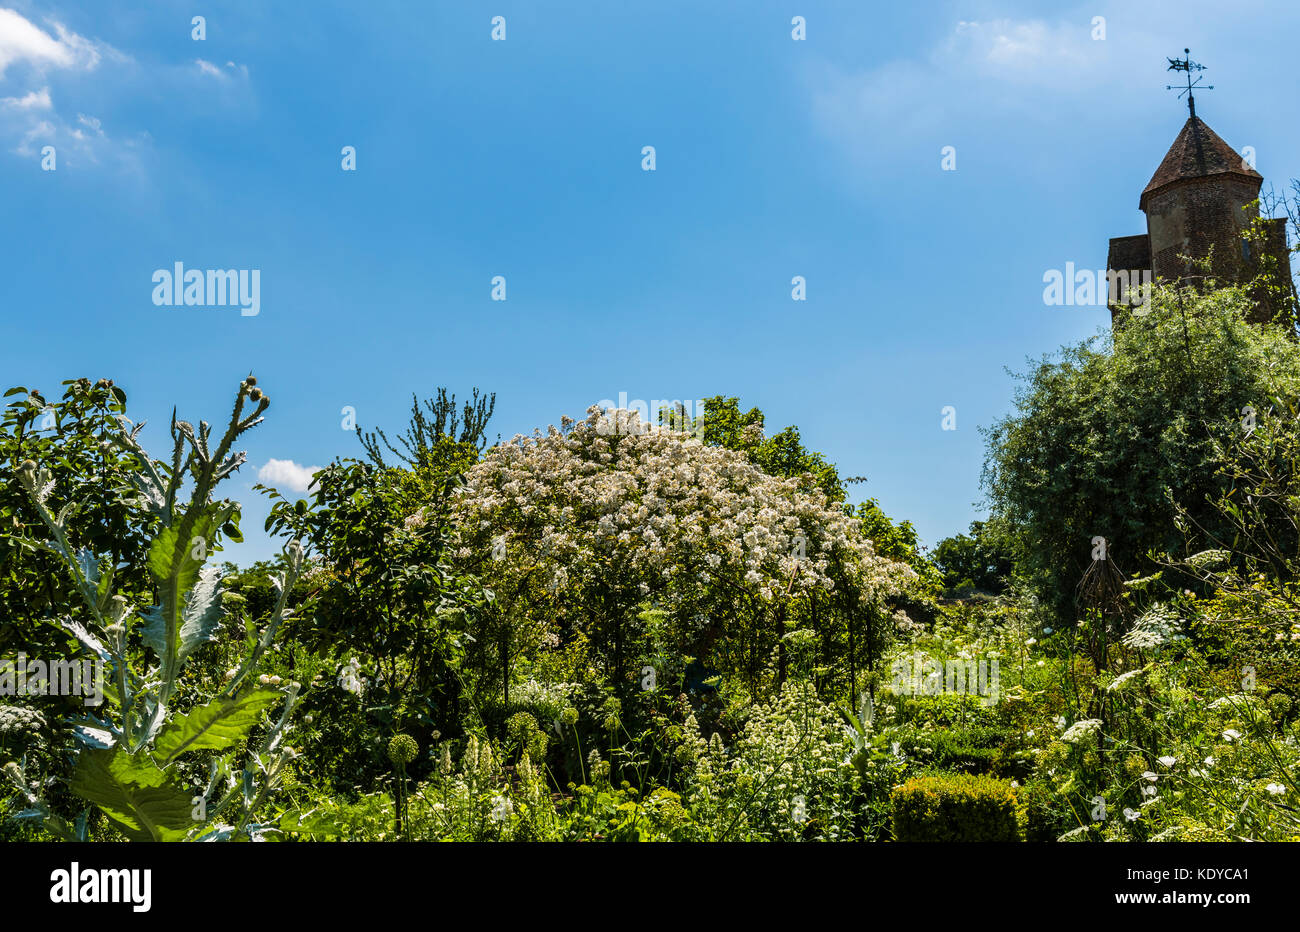 White flowers and blue skies at Sissinghurst Gardens, Kent, UK - Stock Image